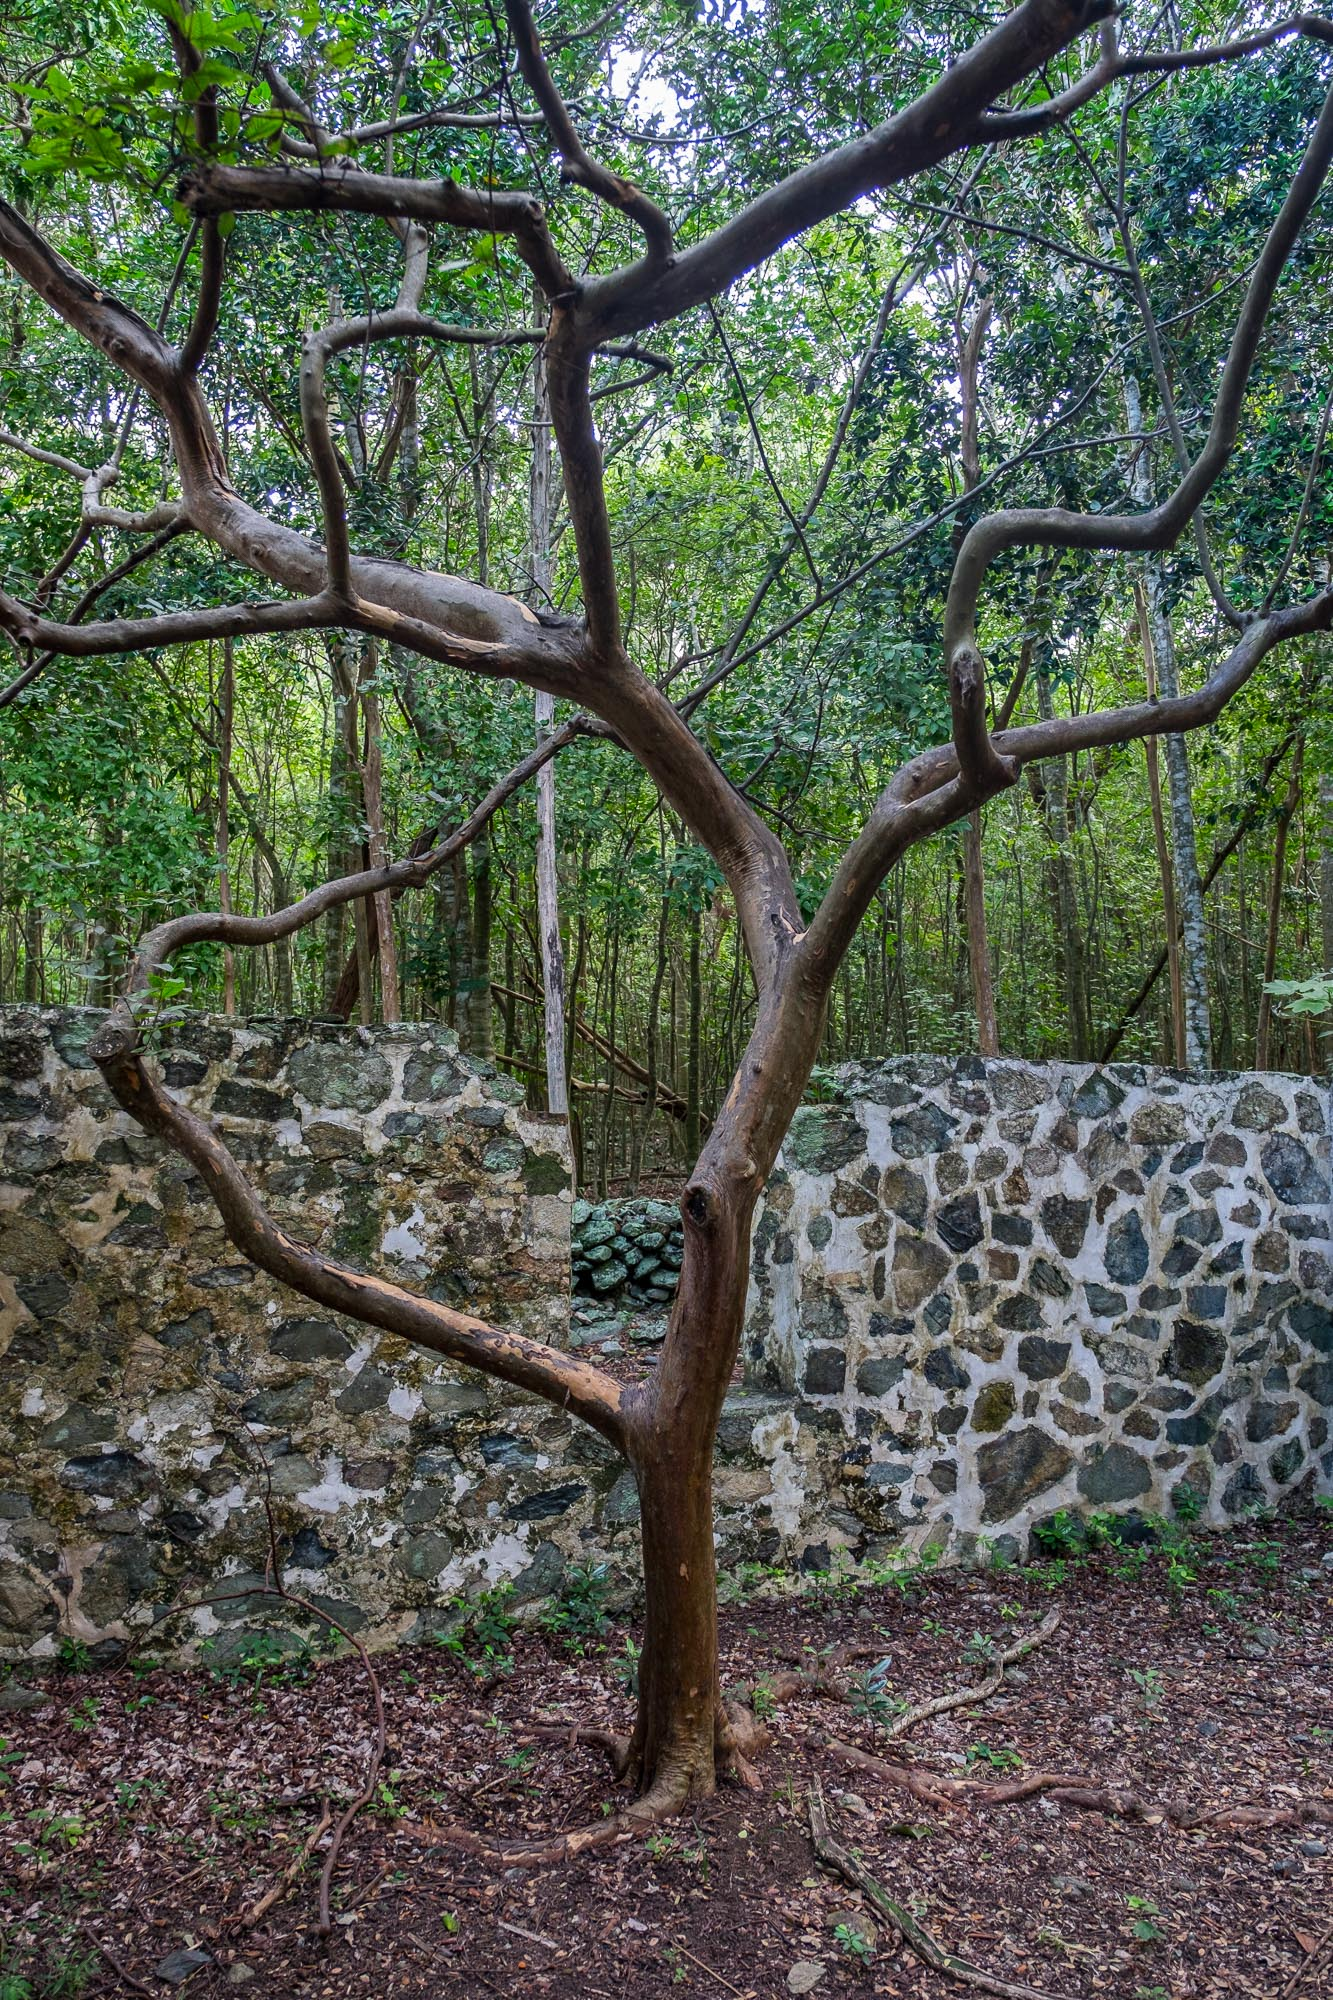 A cool tree growing in the ruins.